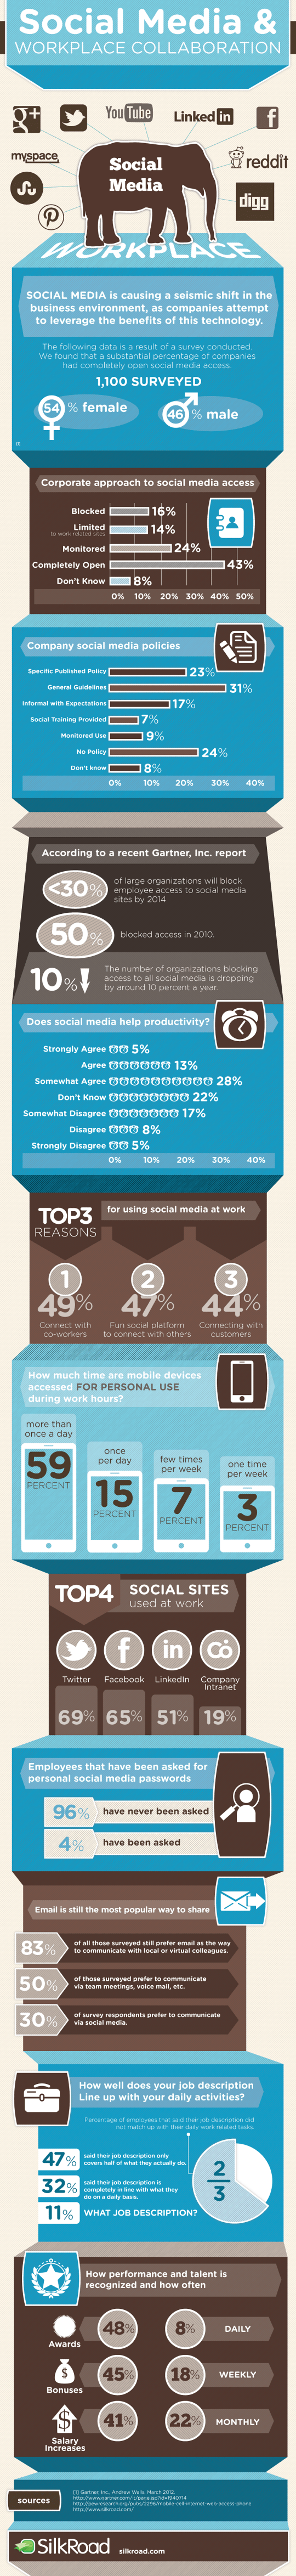 infographic-social-media-workplace